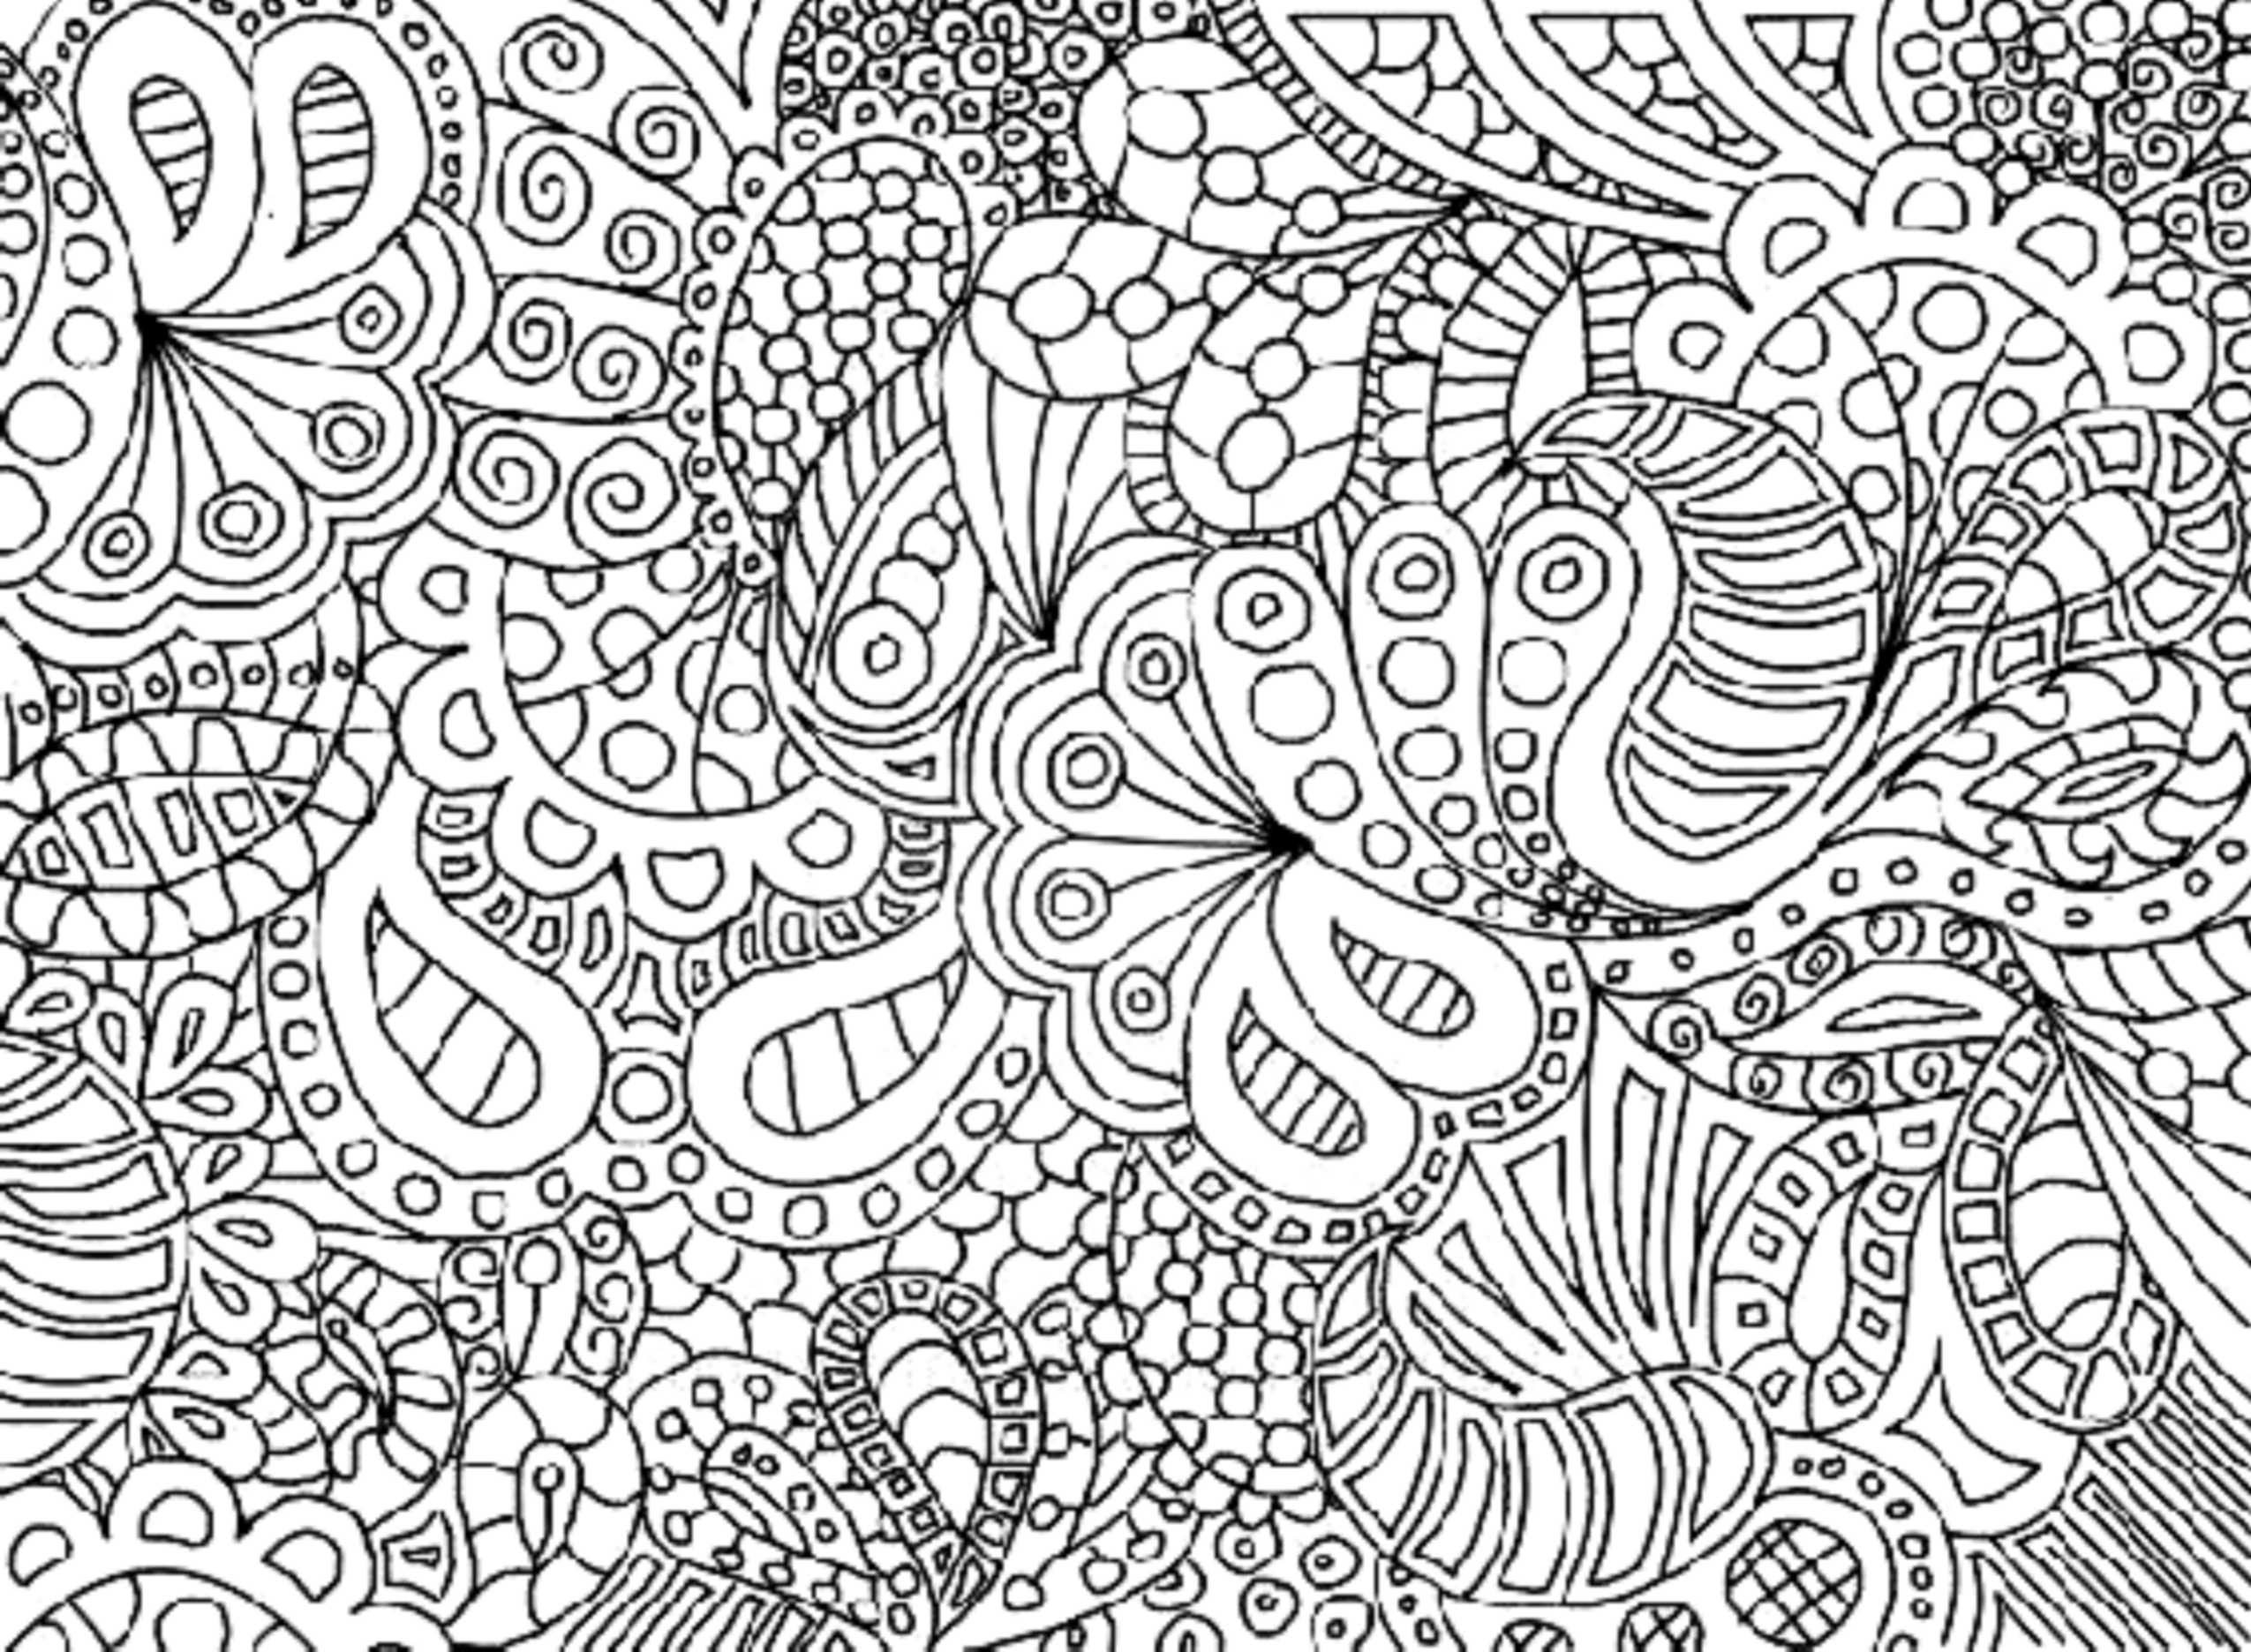 hard drawings to color print download complex coloring pages for kids and adults hard color to drawings